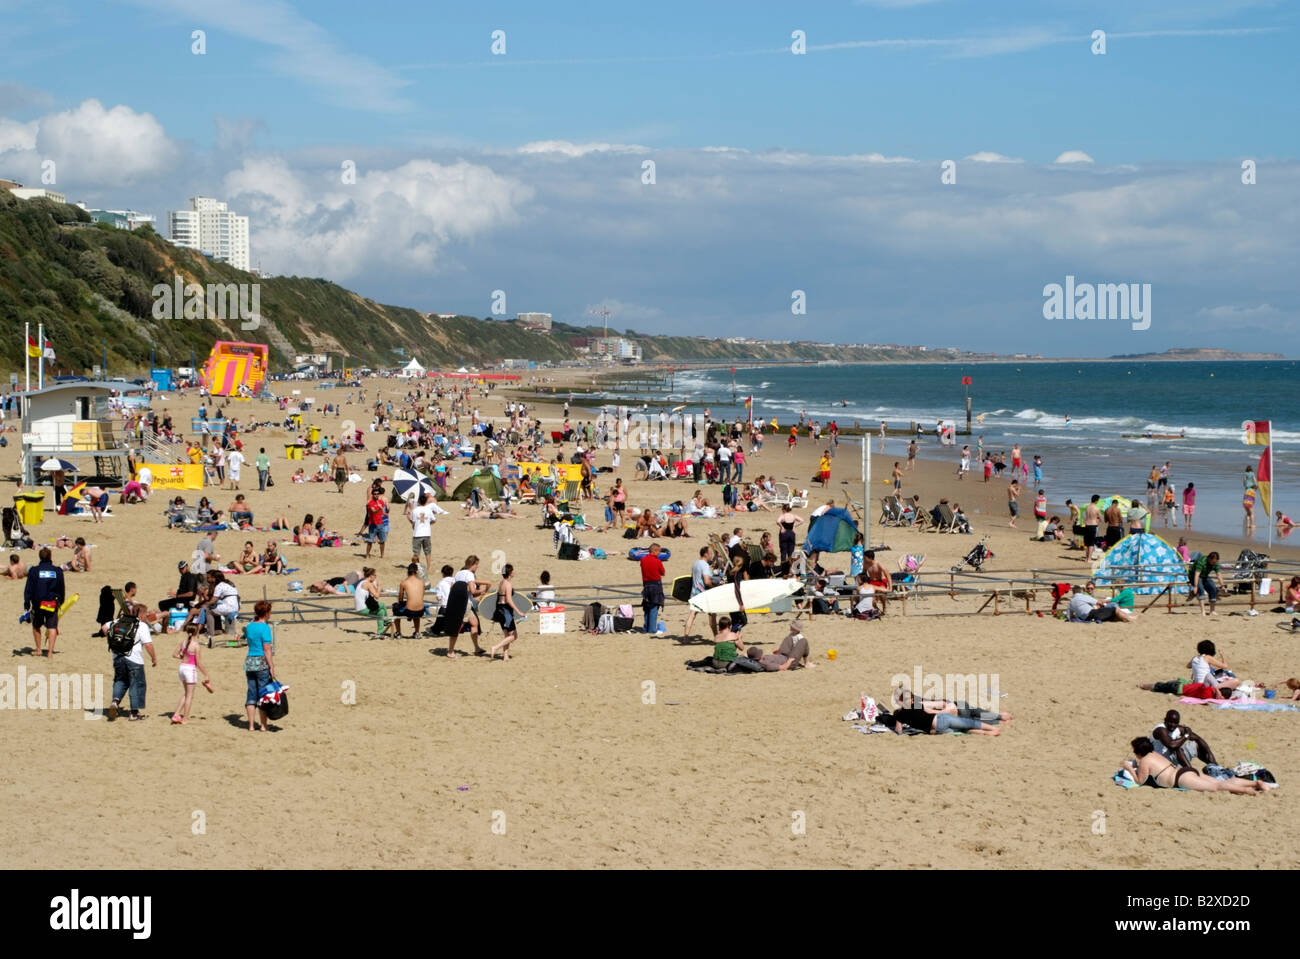 Crowded Seaside Beach Resort The Seafront At Bournemouth Southern England Uk